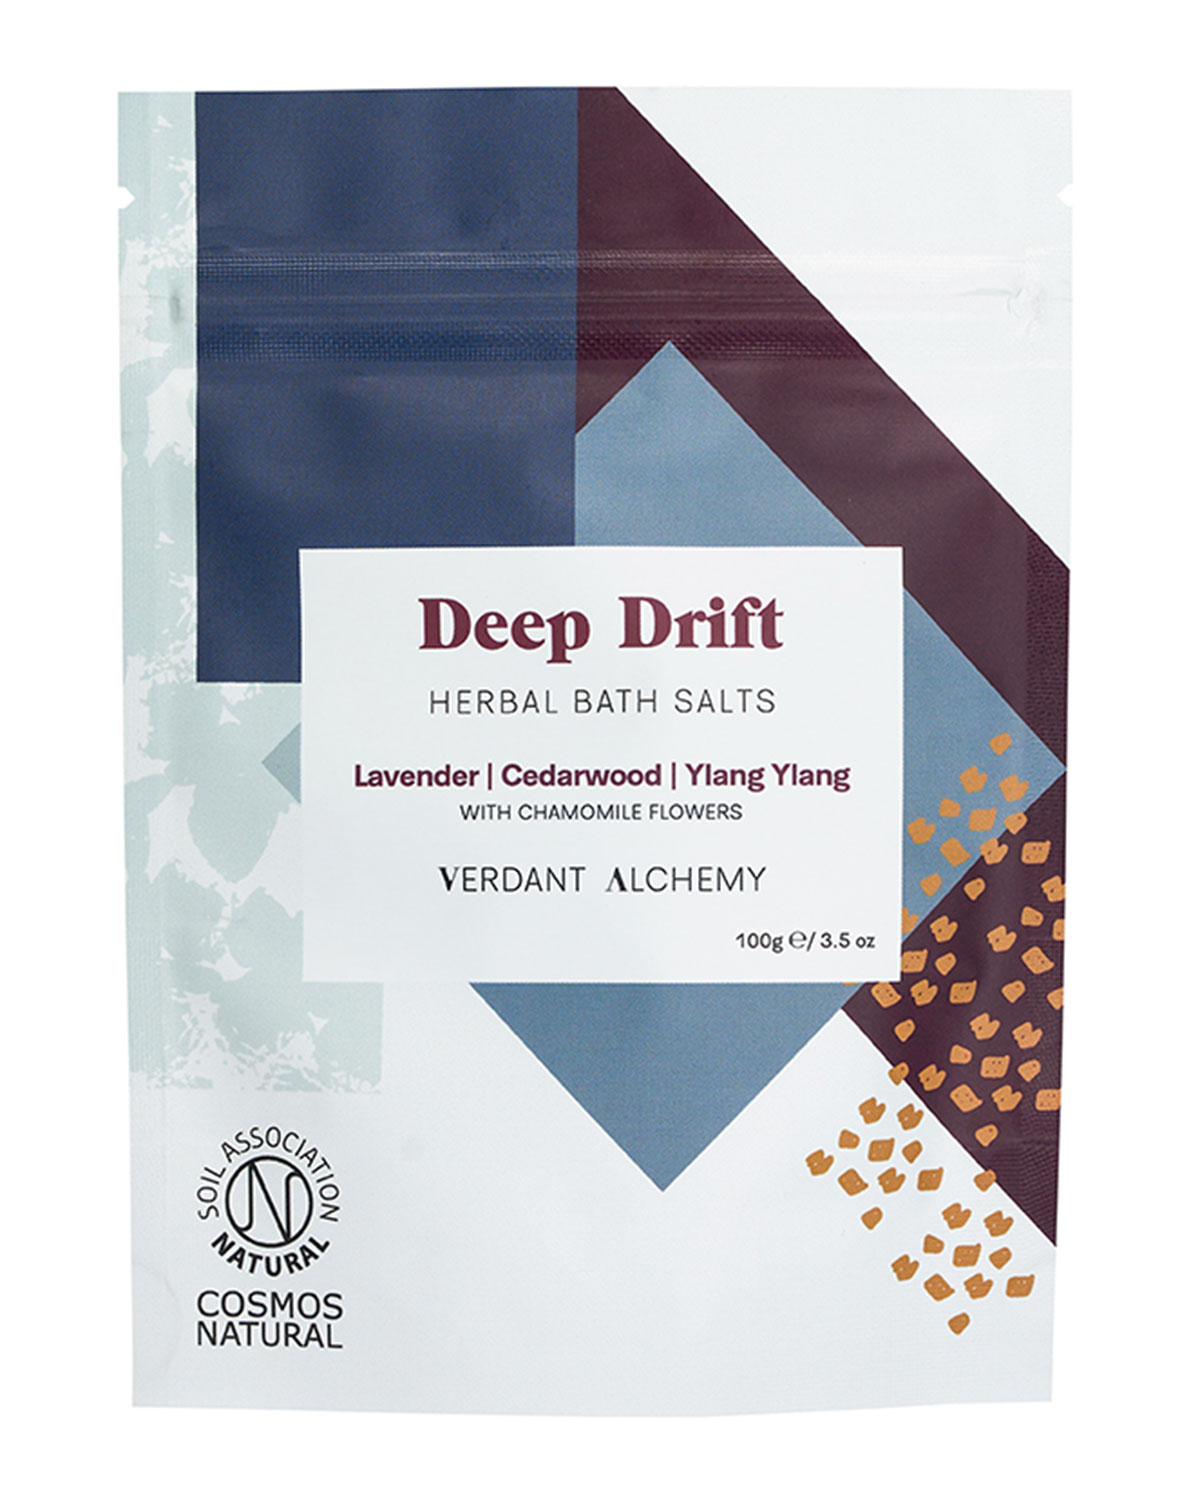 Verdant Alchemy 3.5 oz. Deep Drift Herbal Bath Salts